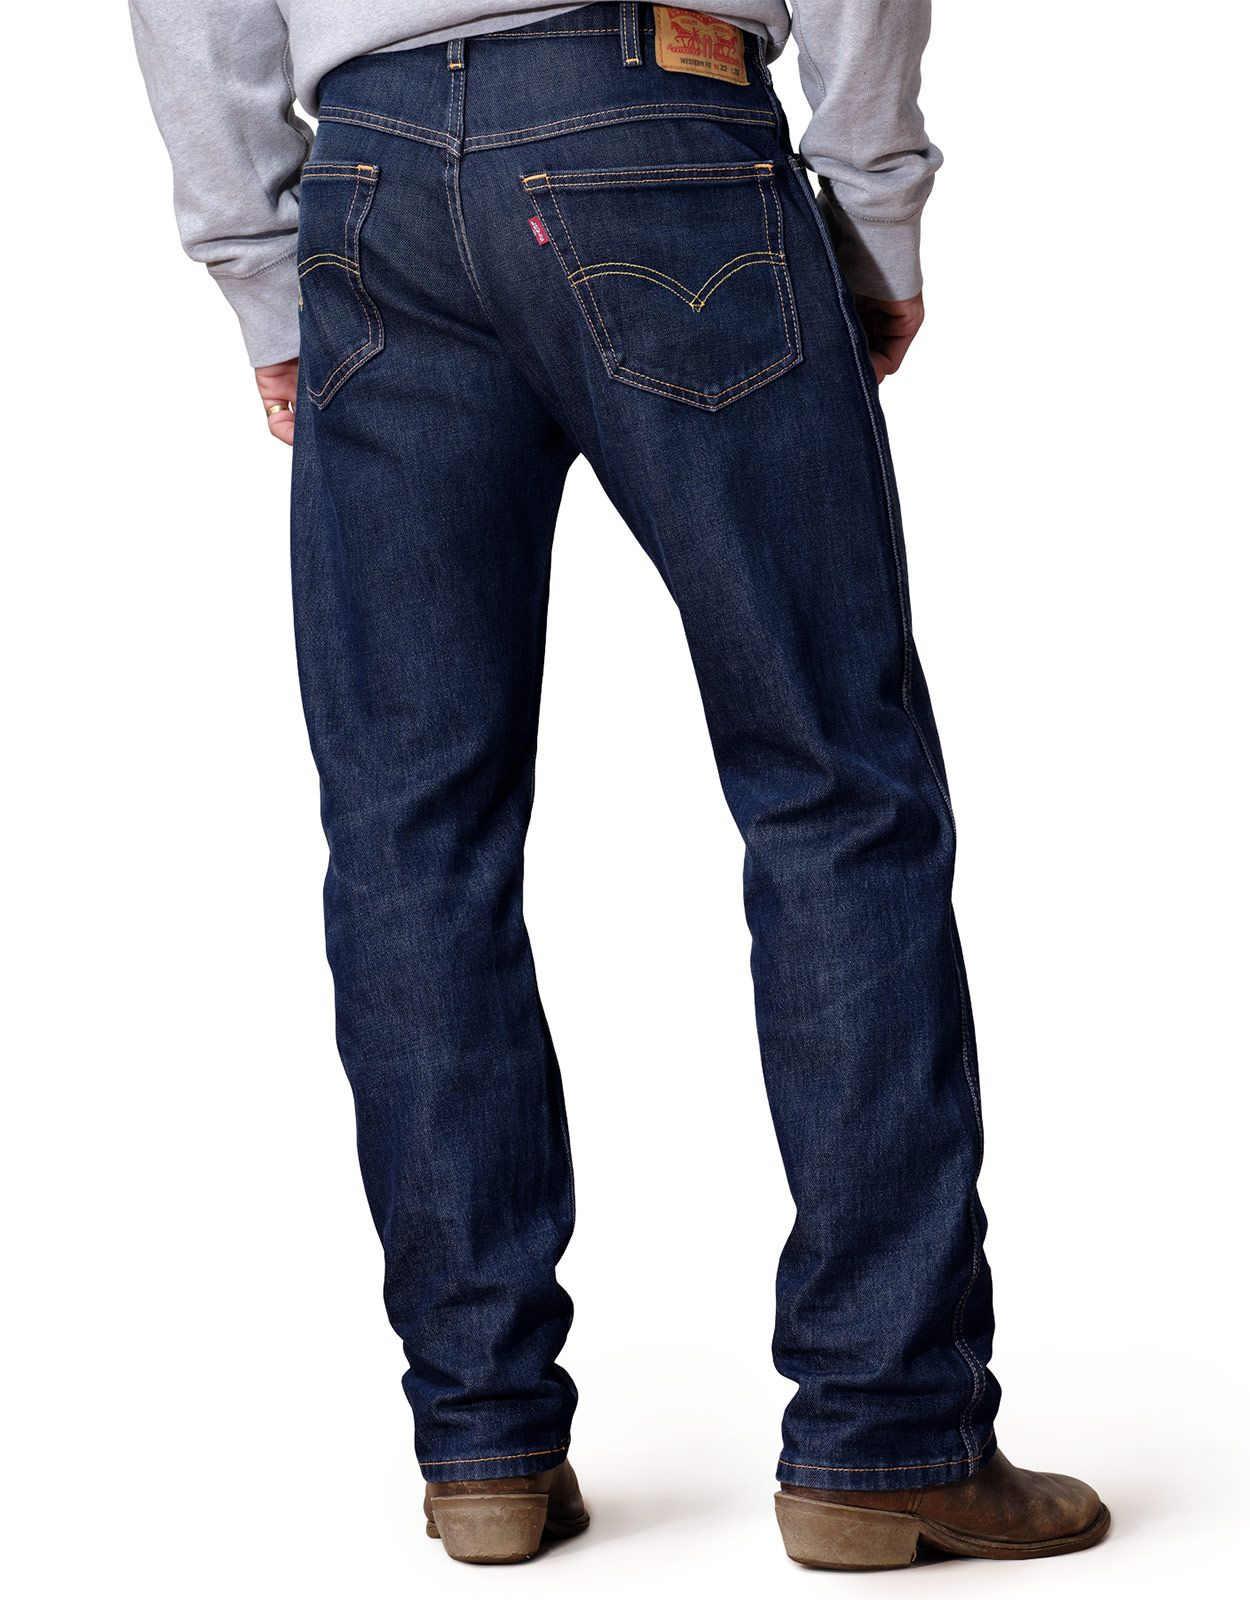 Levi's Men's Western Fit Stretch Mid Rise Regular Fit Straight Leg Jeans - On That Mountain